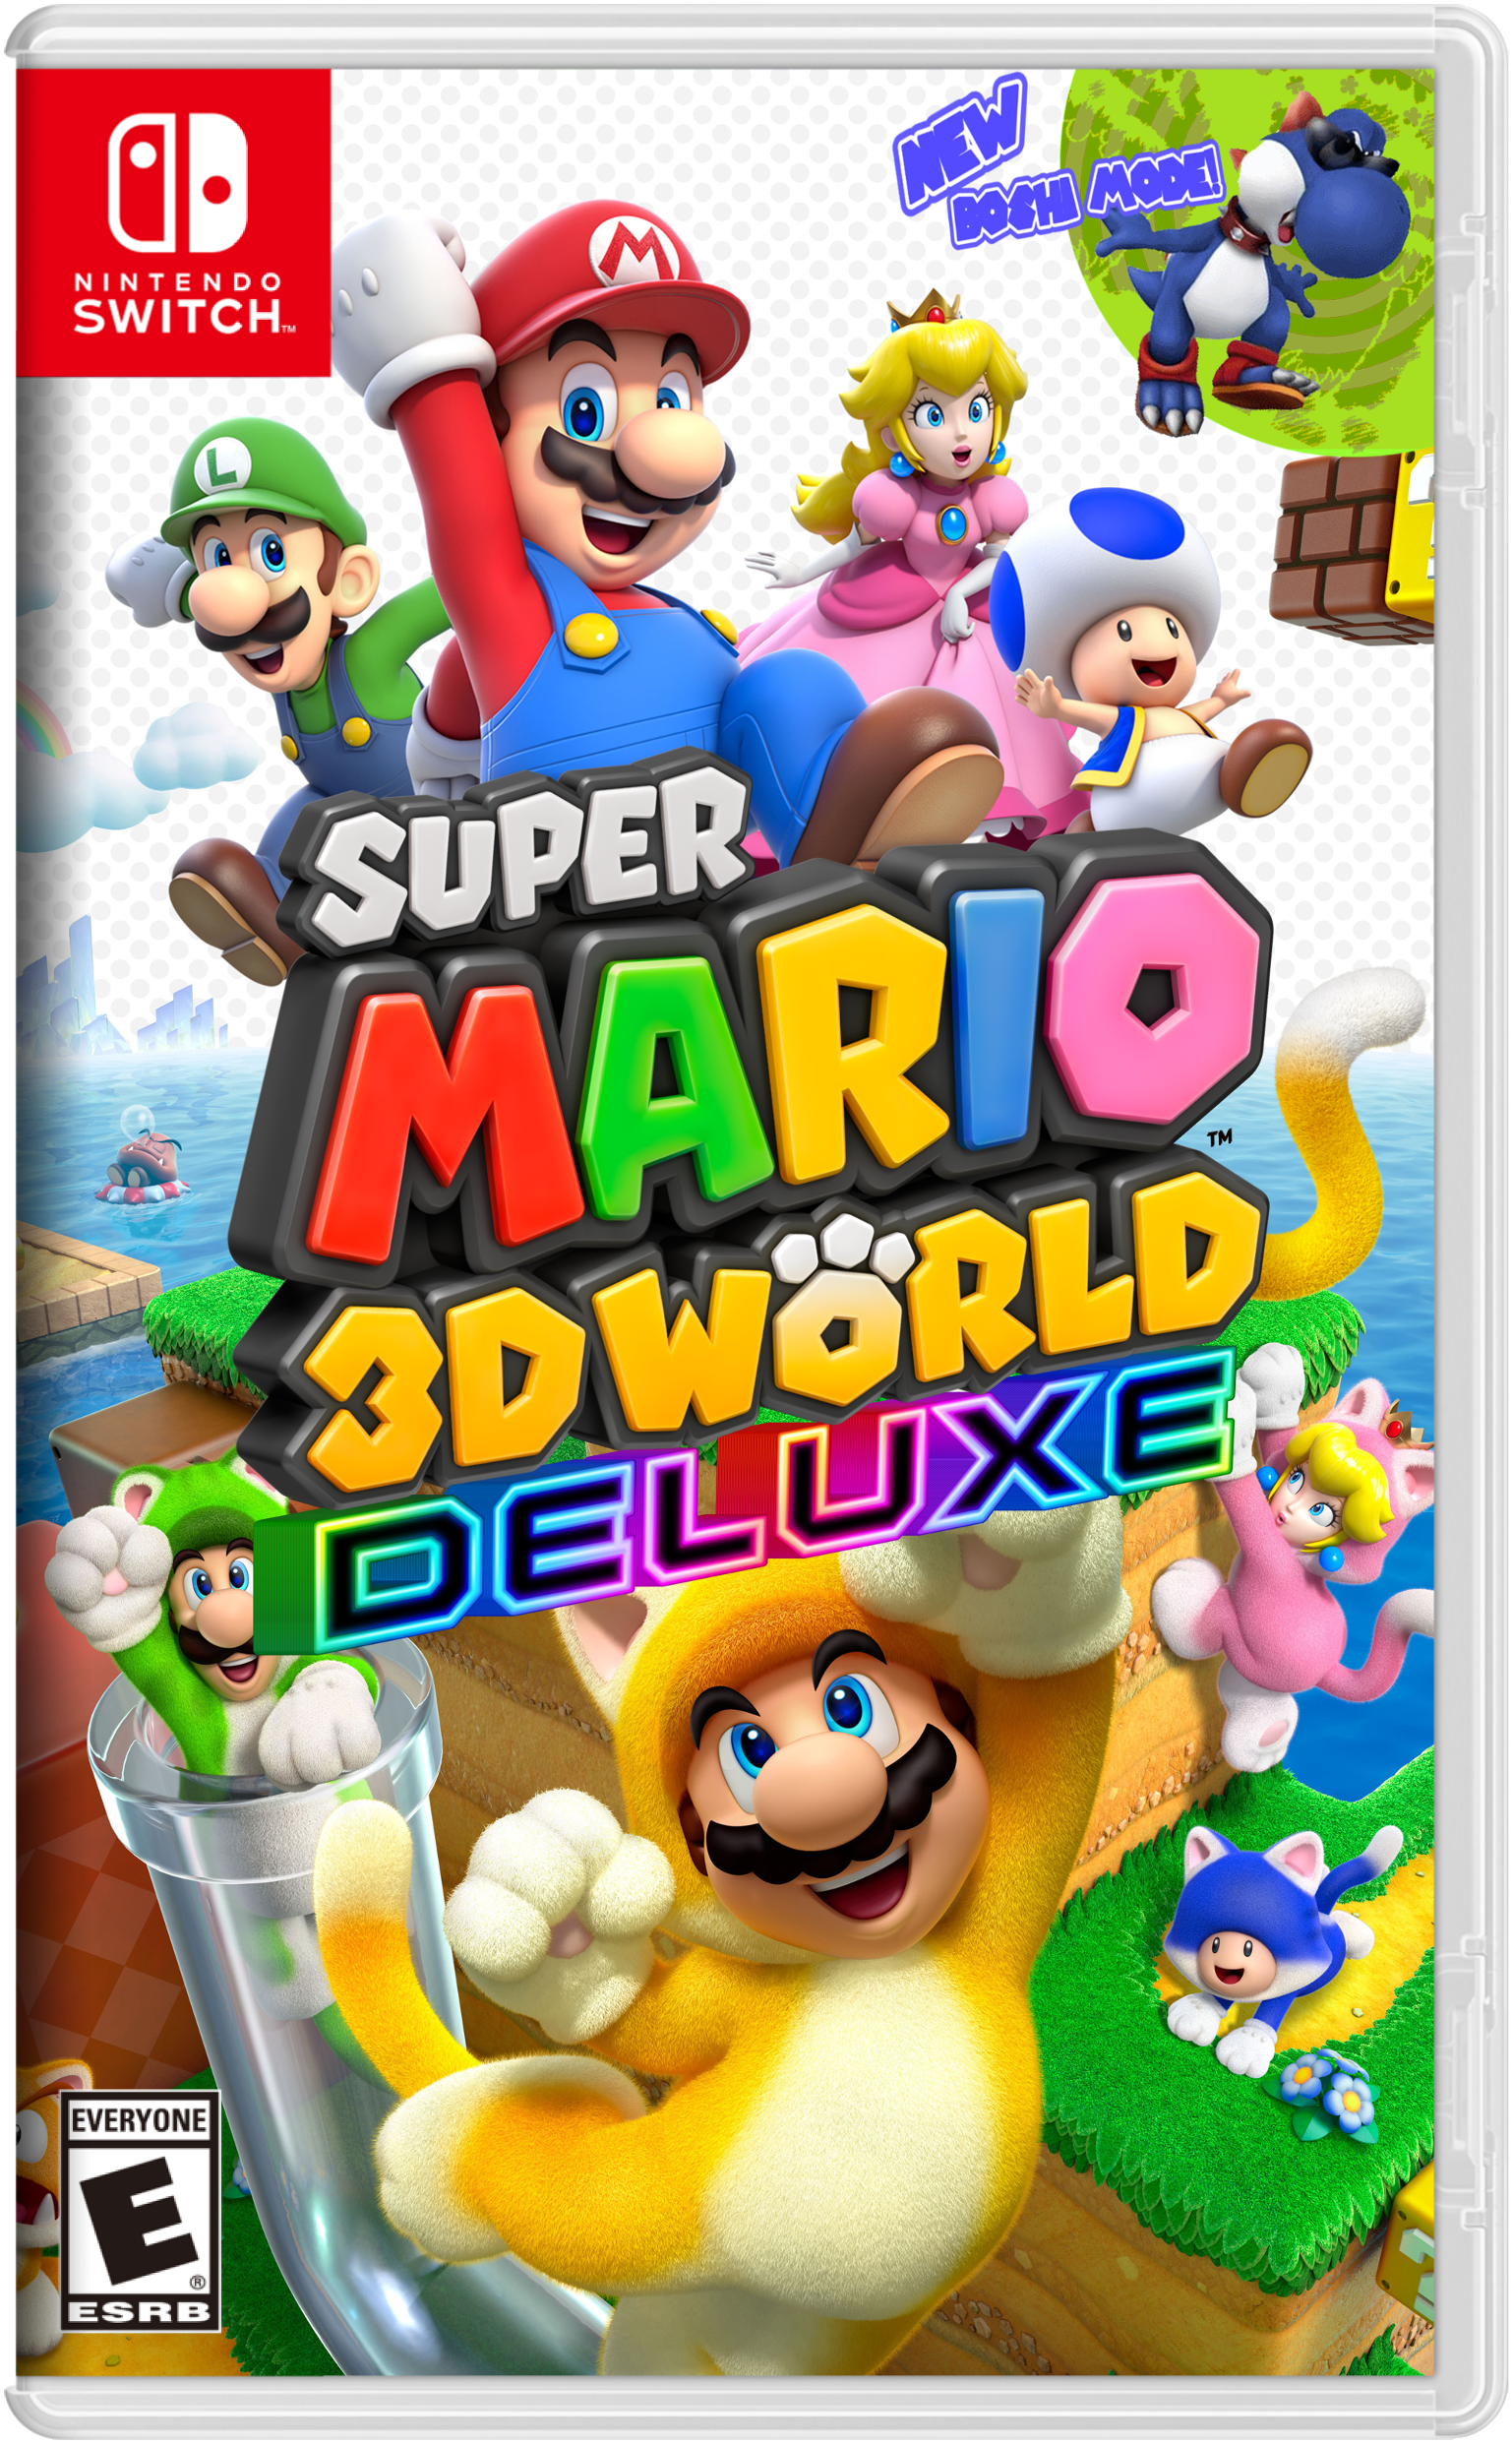 Super Mario 3d World Deluxe For Nintendo Switch Nintendo Switch Super Mario 3d Nintendo Switch Super Mario Super Mario Plush